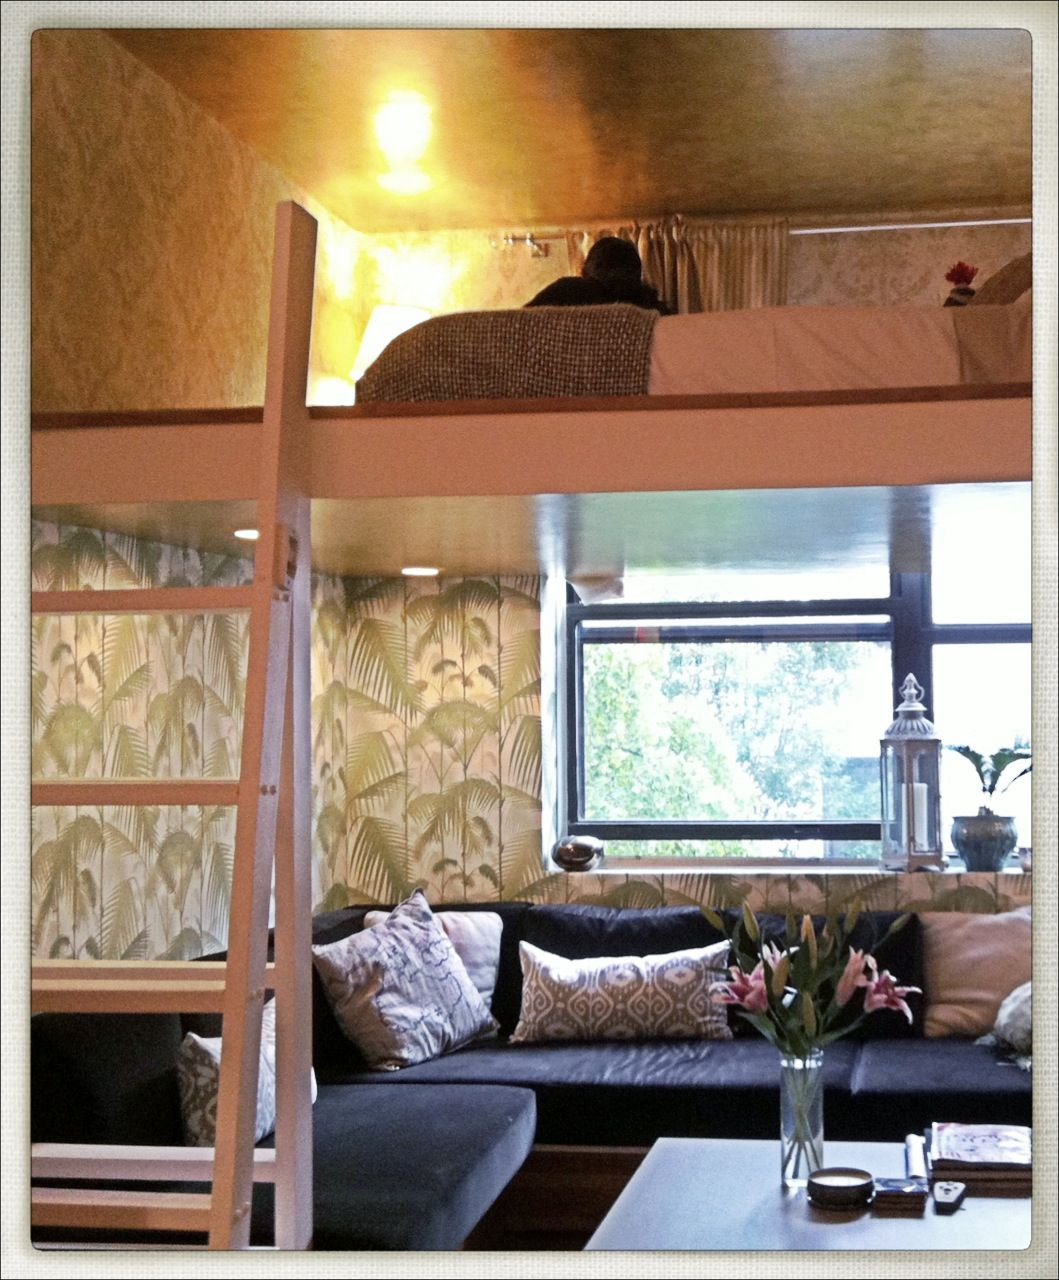 Small spaces Loft beds, Tropical wallpaper from Cole and